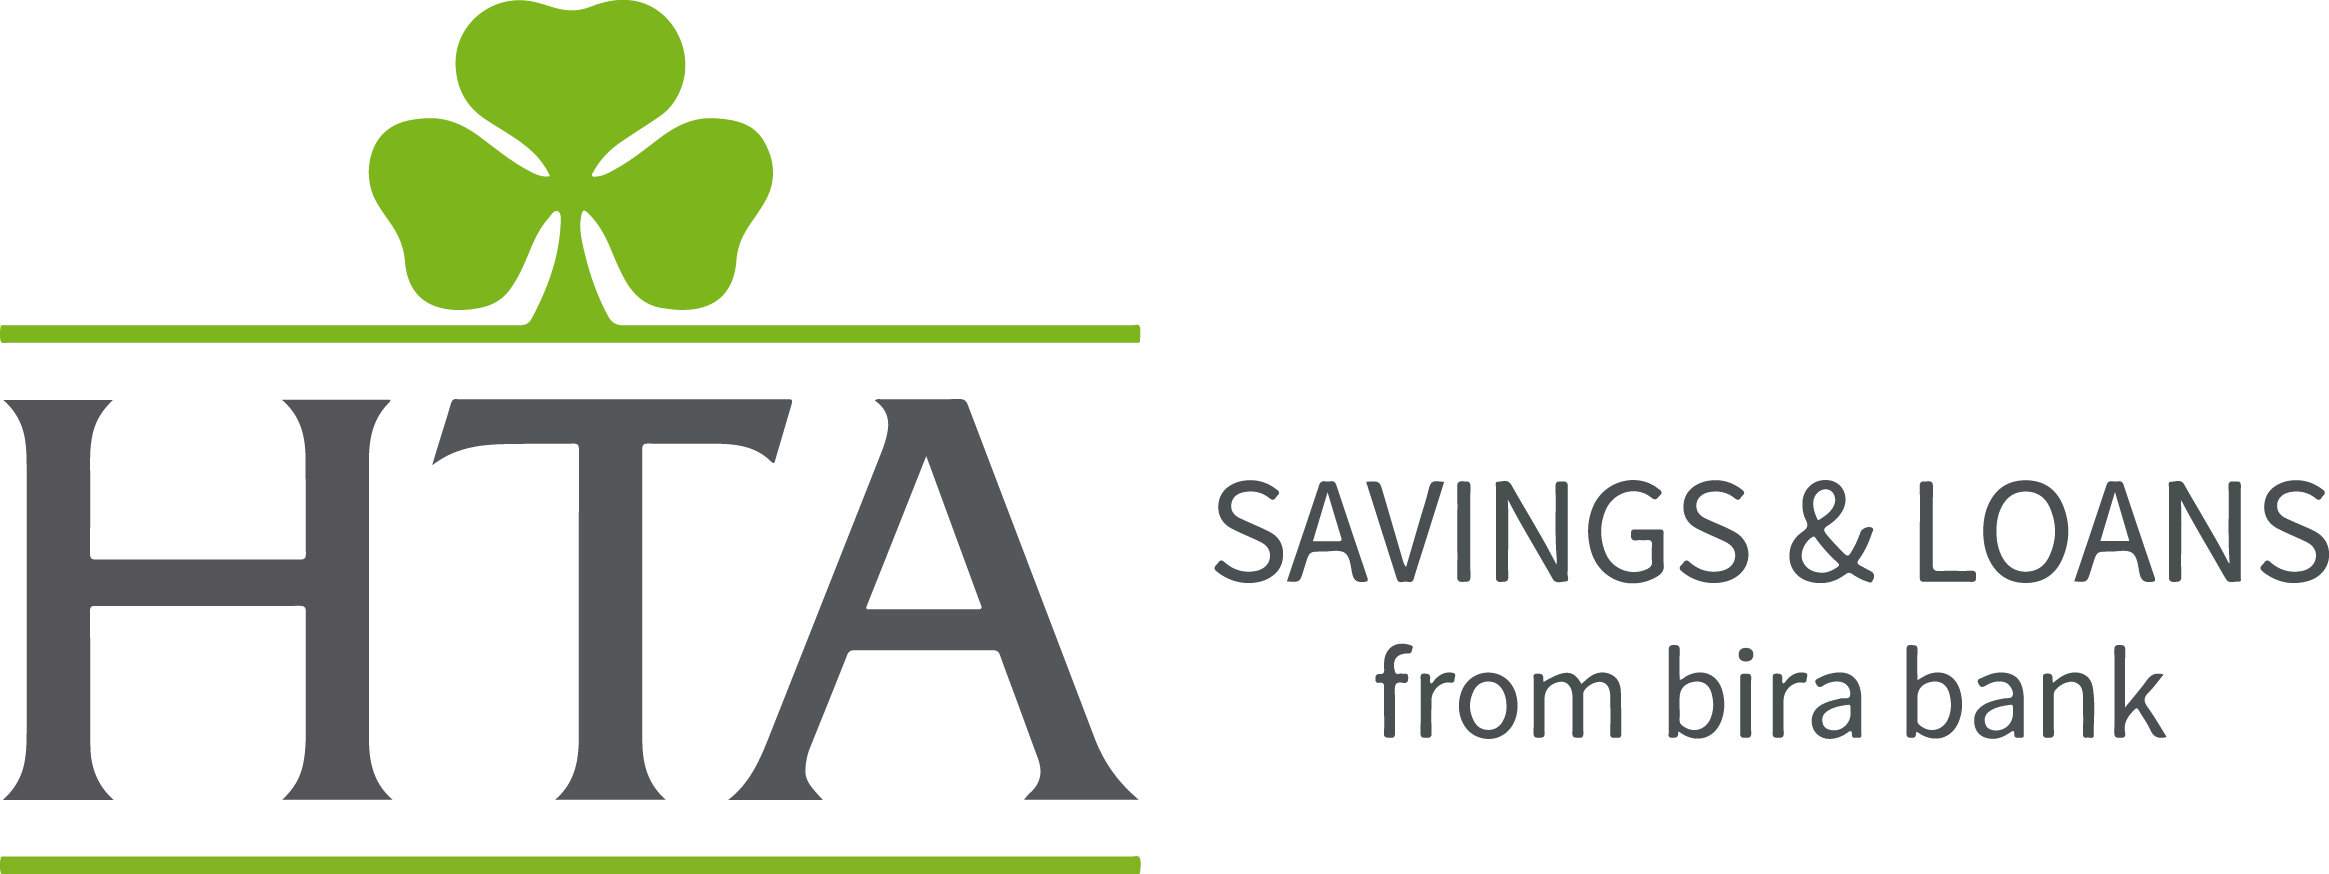 HTA - Horticultural Trade Association. Best rates with bira bank and the British Independent Retailers Association